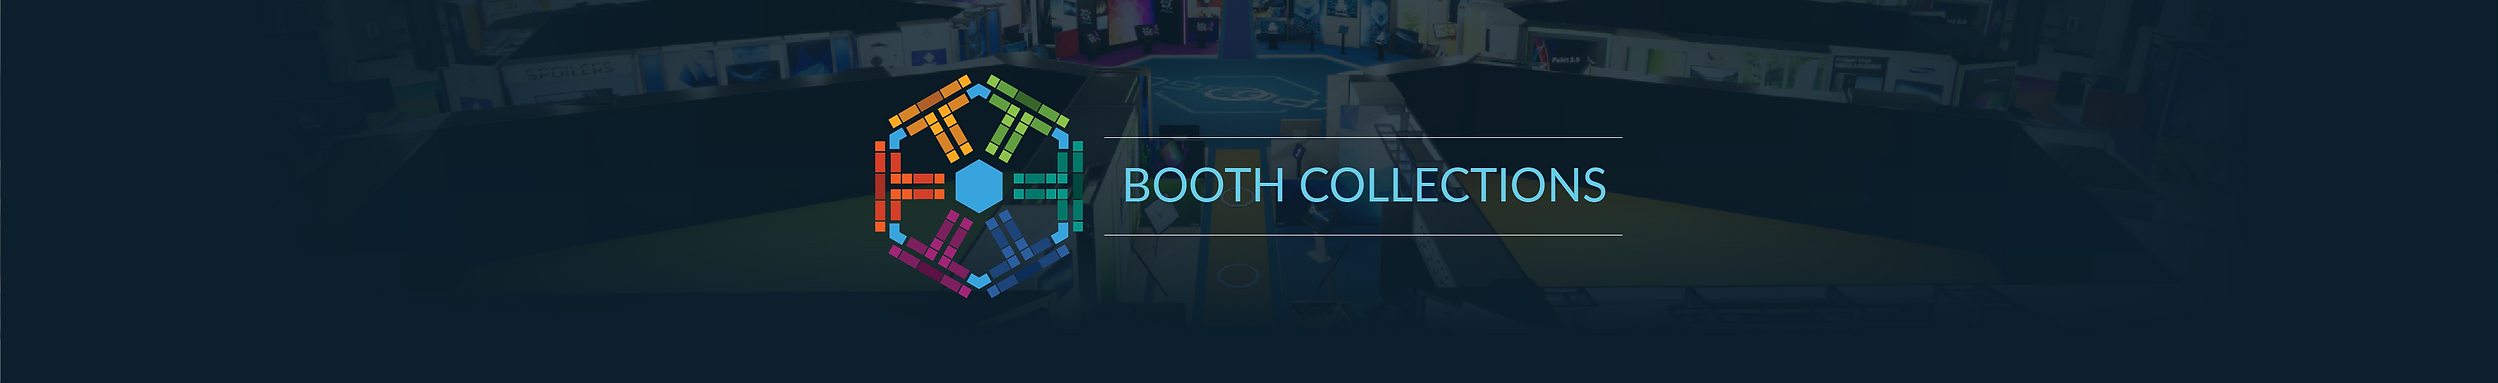 headers_booth collections-16.png